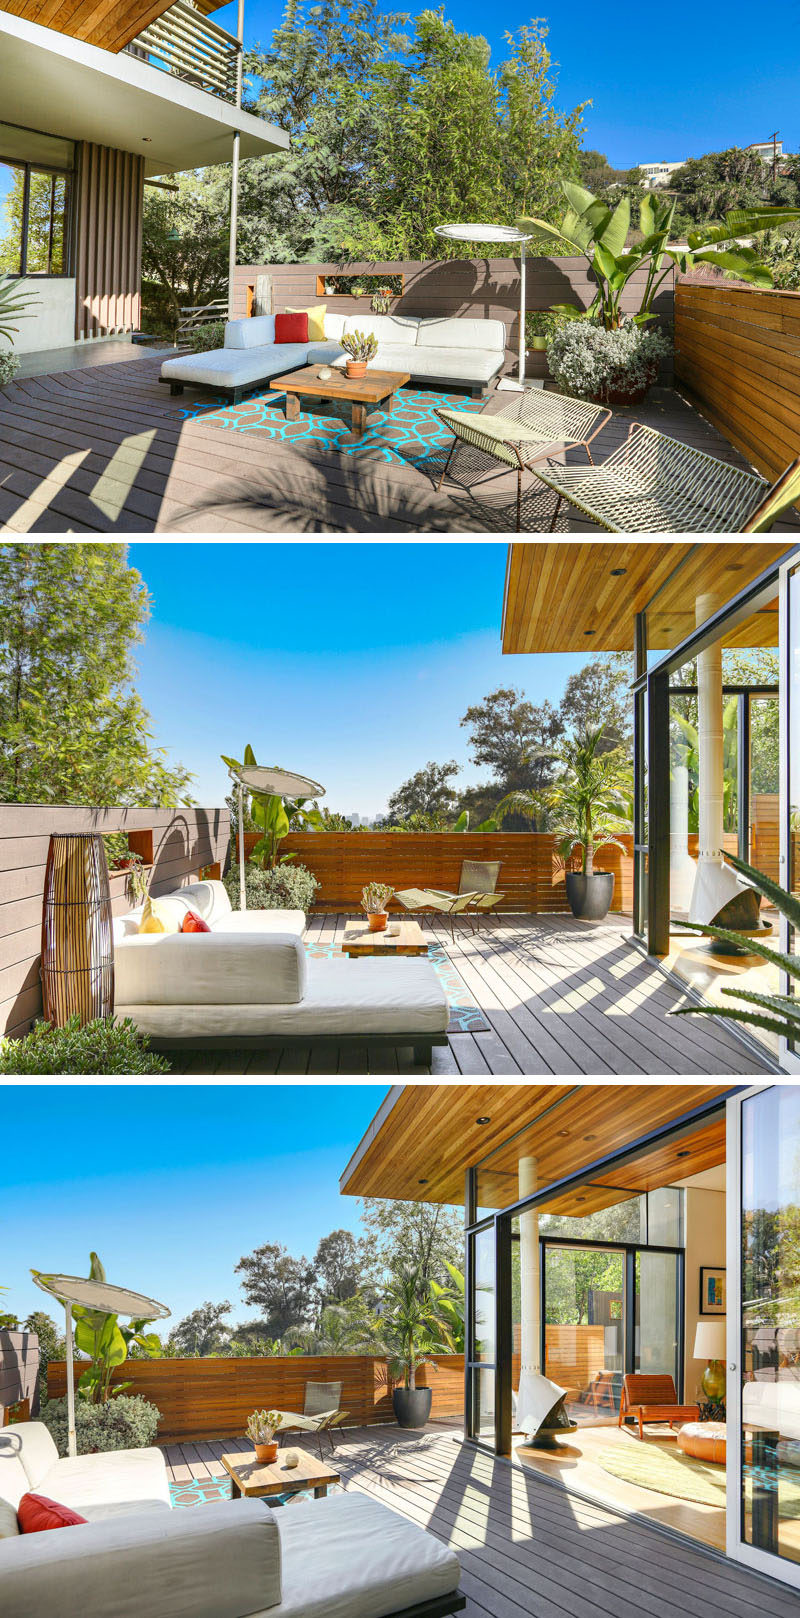 This contemporary house has a large deck with plenty of space for outdoor lounging. #Deck #OutdoorSpace